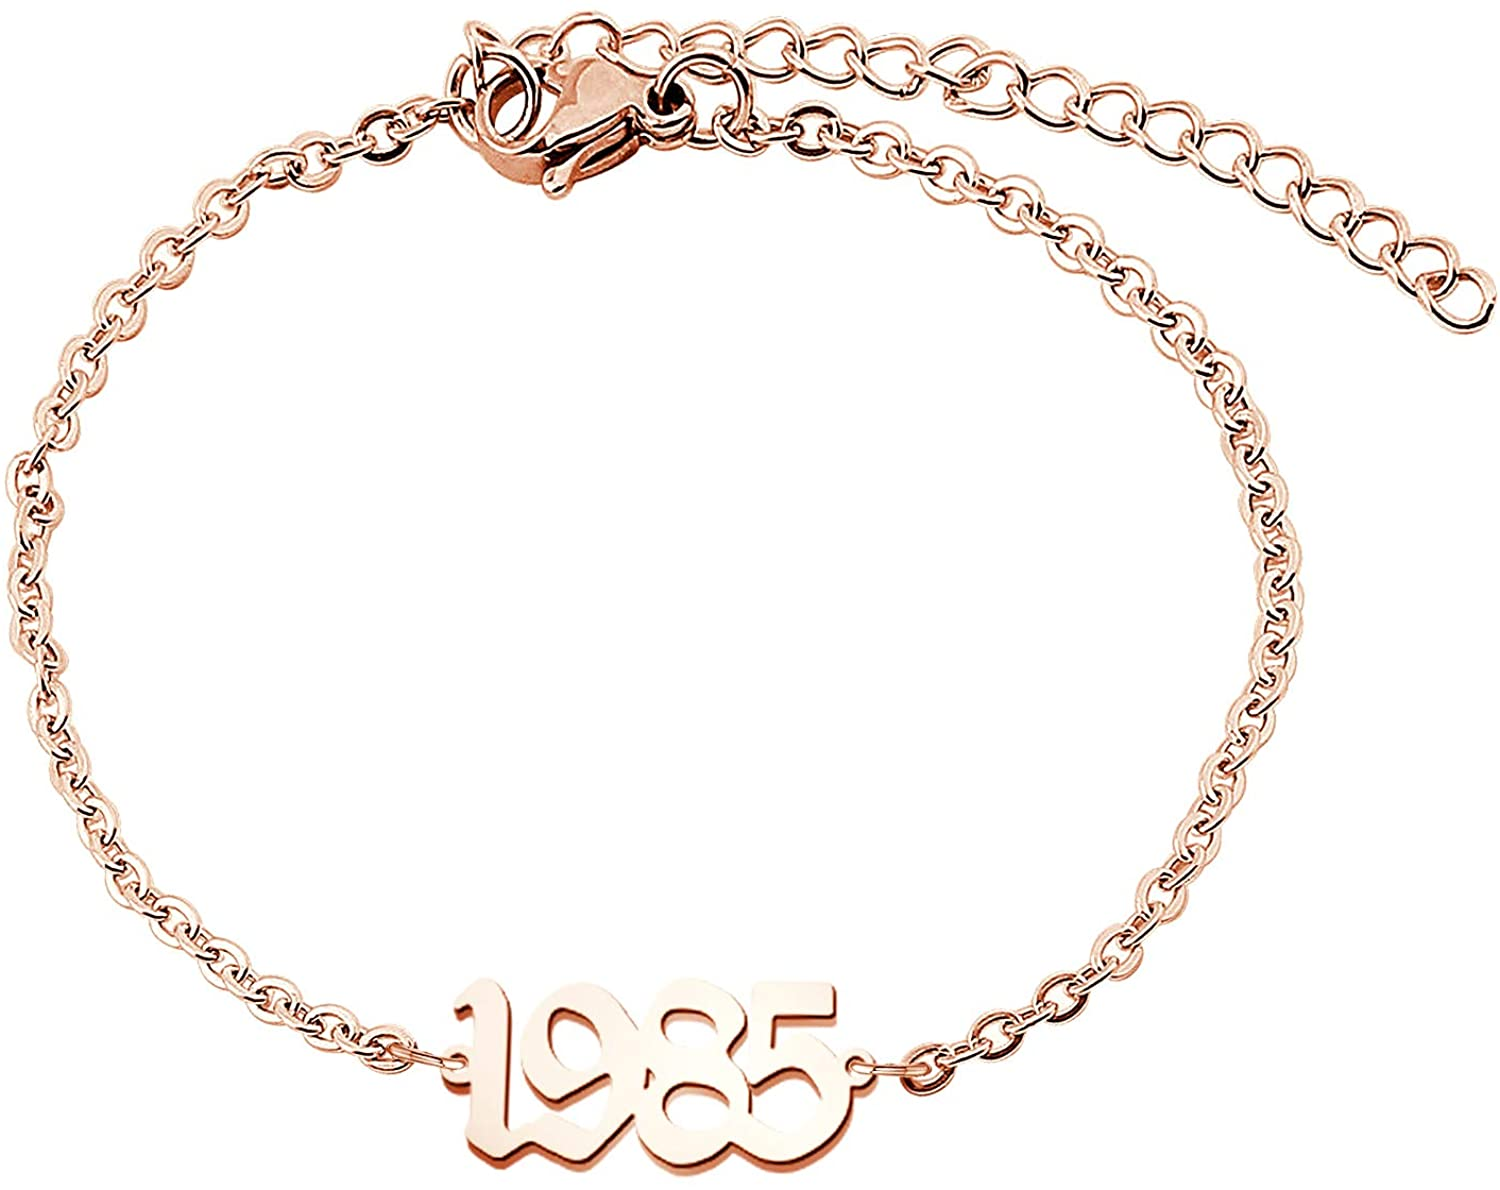 FAADBUK Birth Years Anklet Initial Year Number Rose Gold Pendant Anklets 1980-2020 Initial Year Number Anklet Old English Arabic Number Stainless Steel Friendship Ankle Bracelet